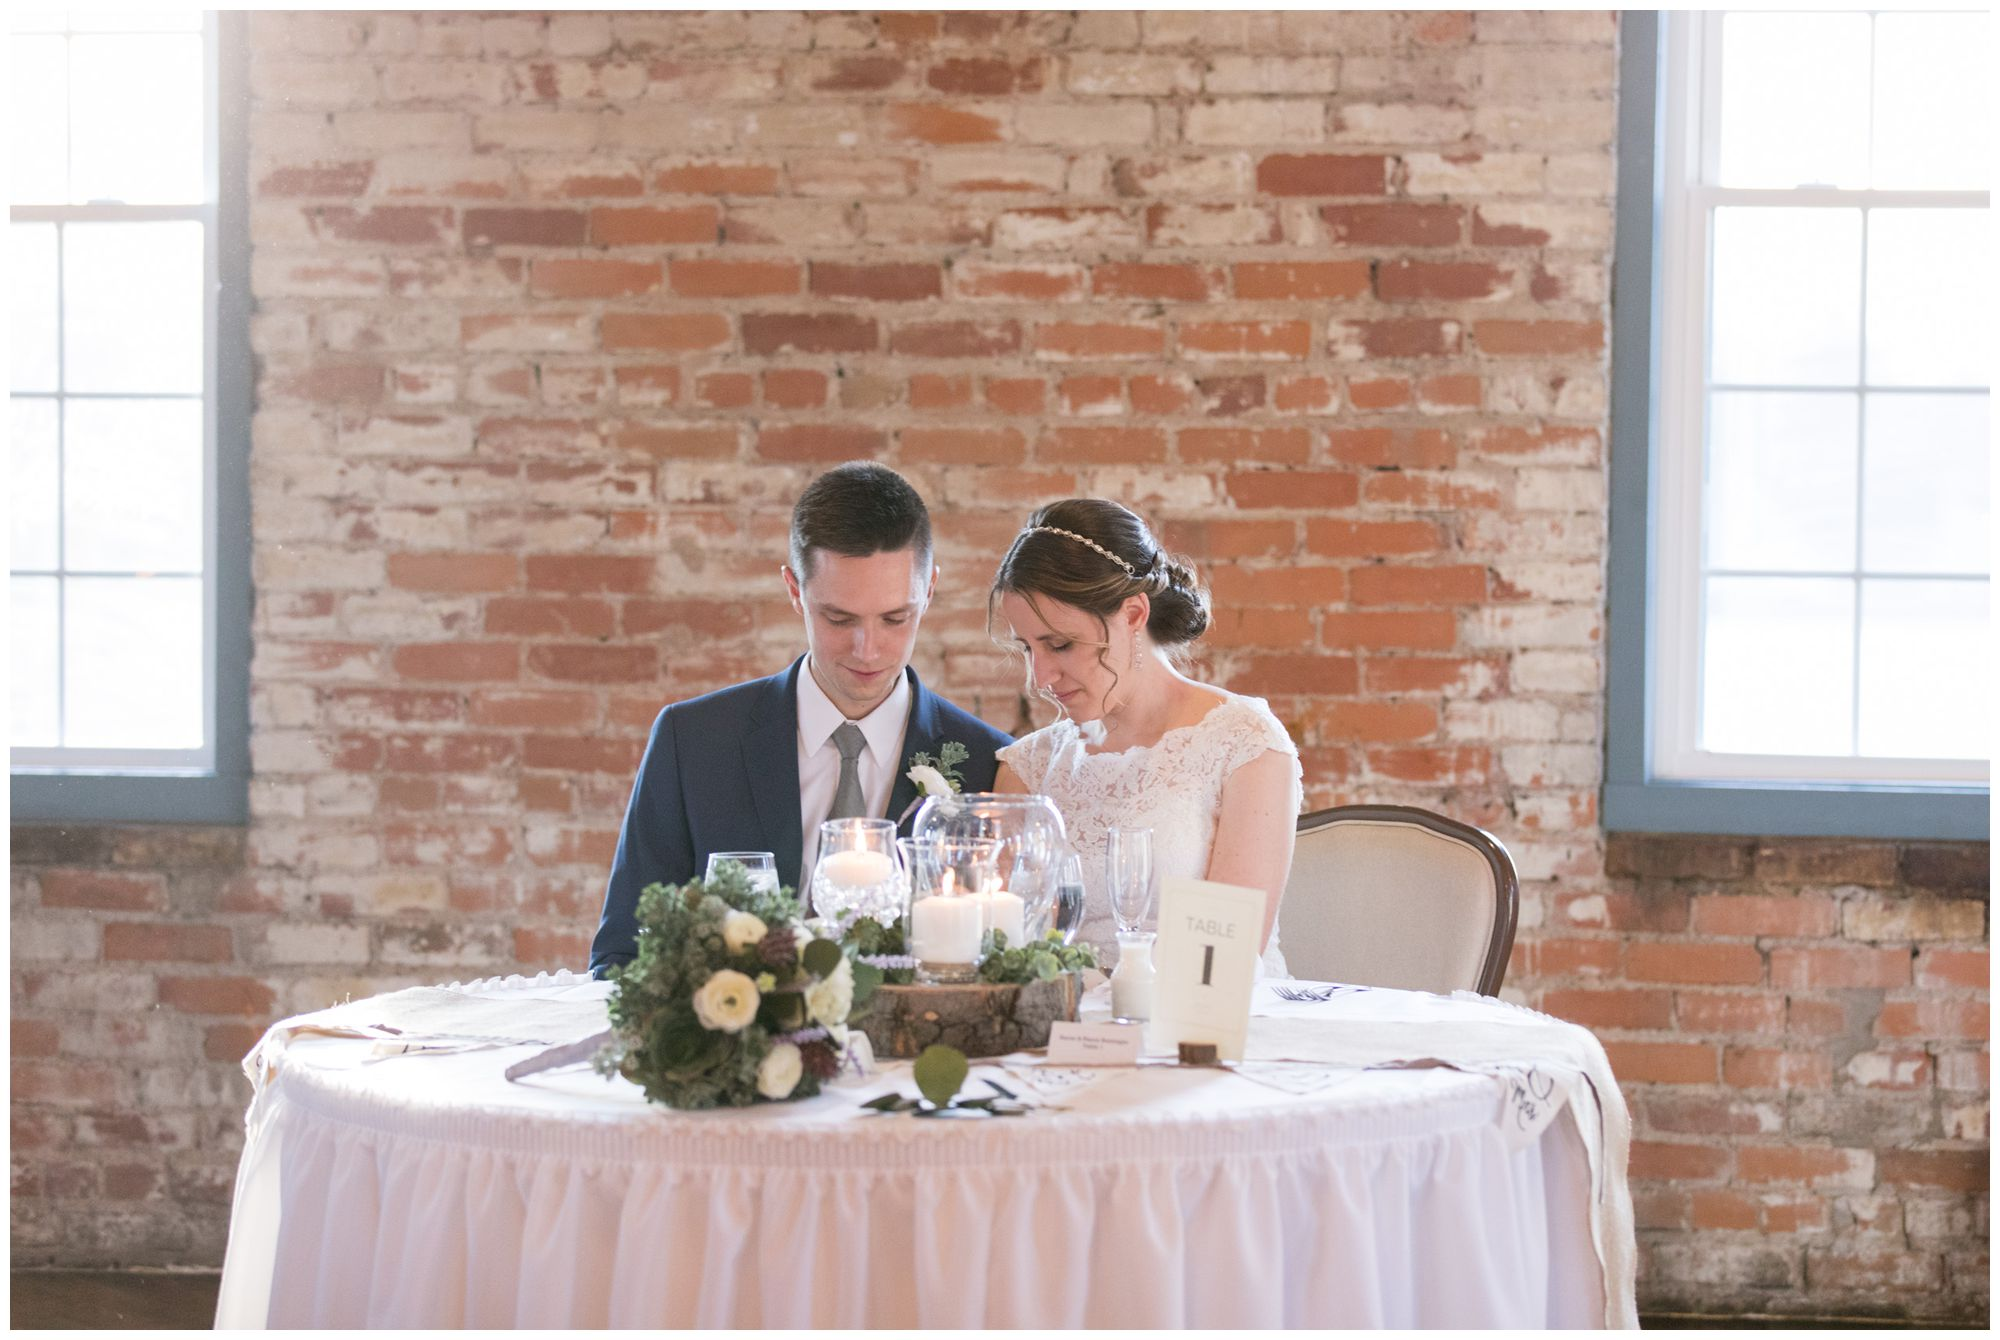 bride and groom pray together before dinner at Goshen wedding reception